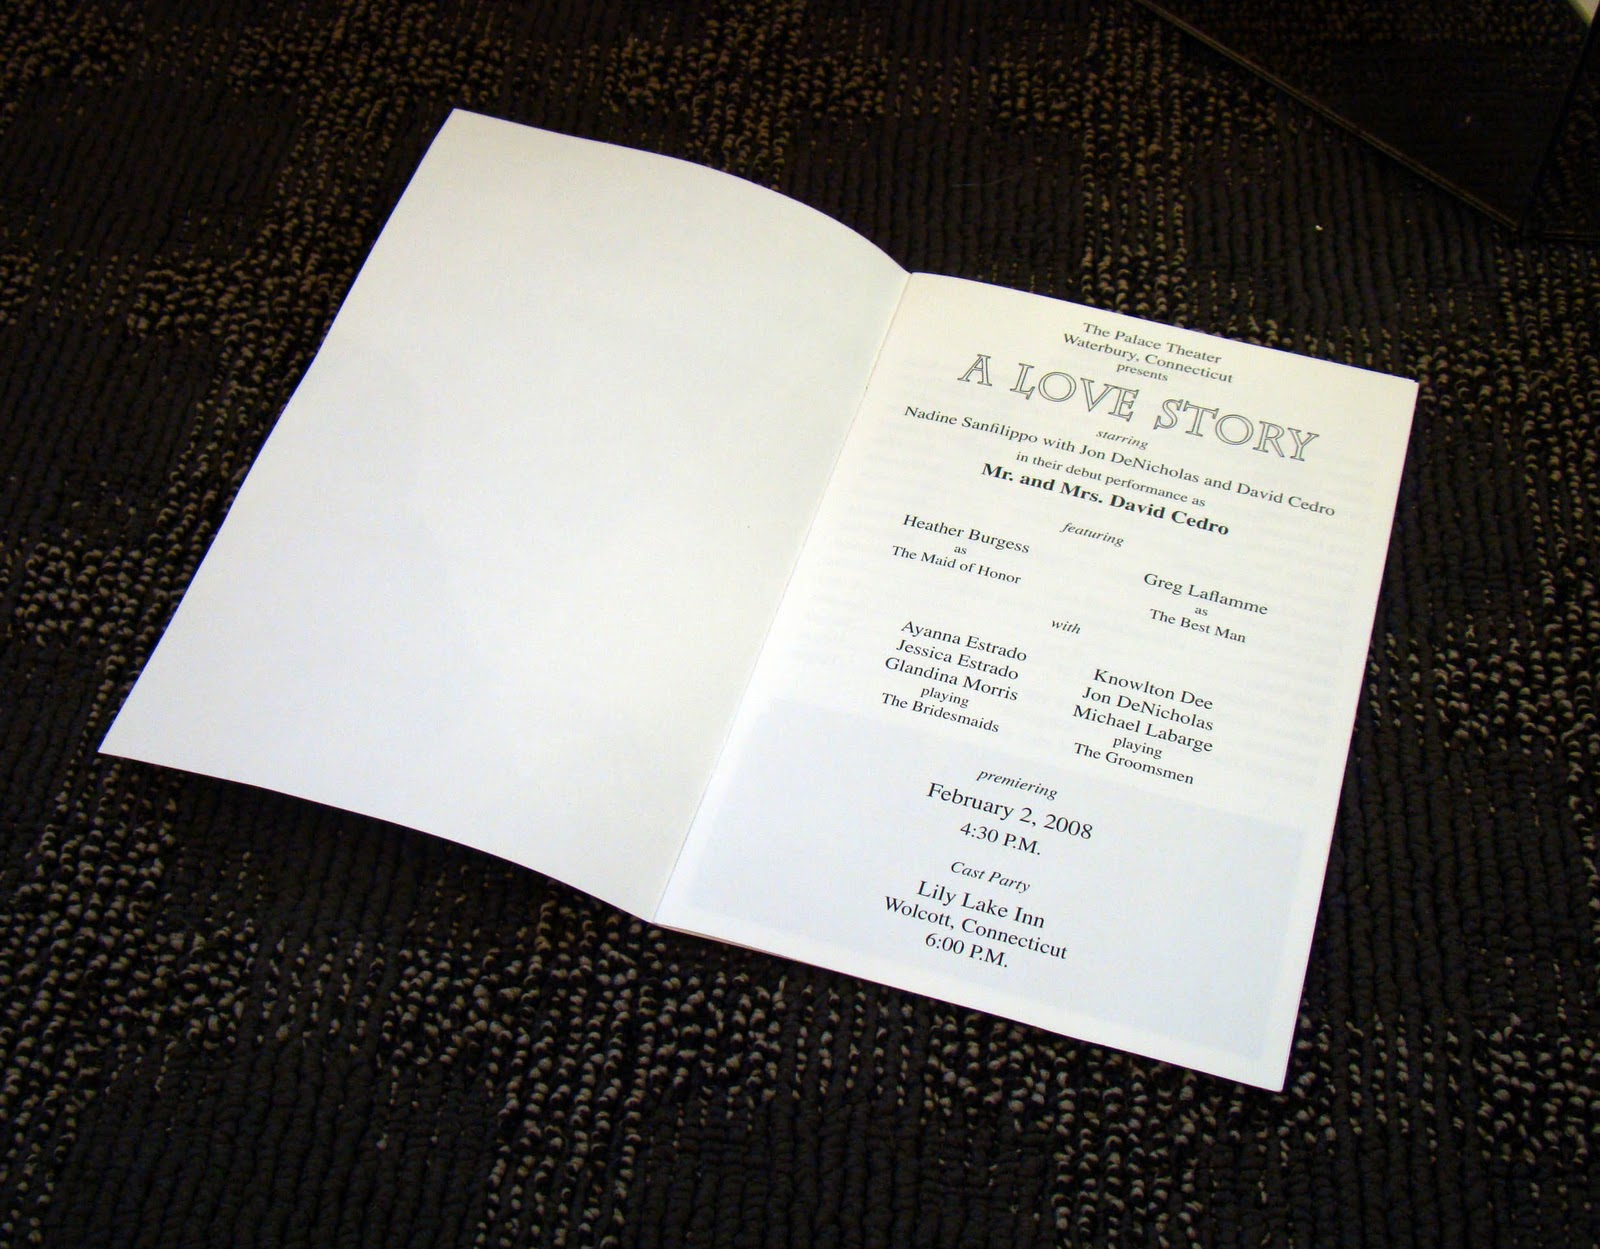 invitations to celebrations playbill wedding program